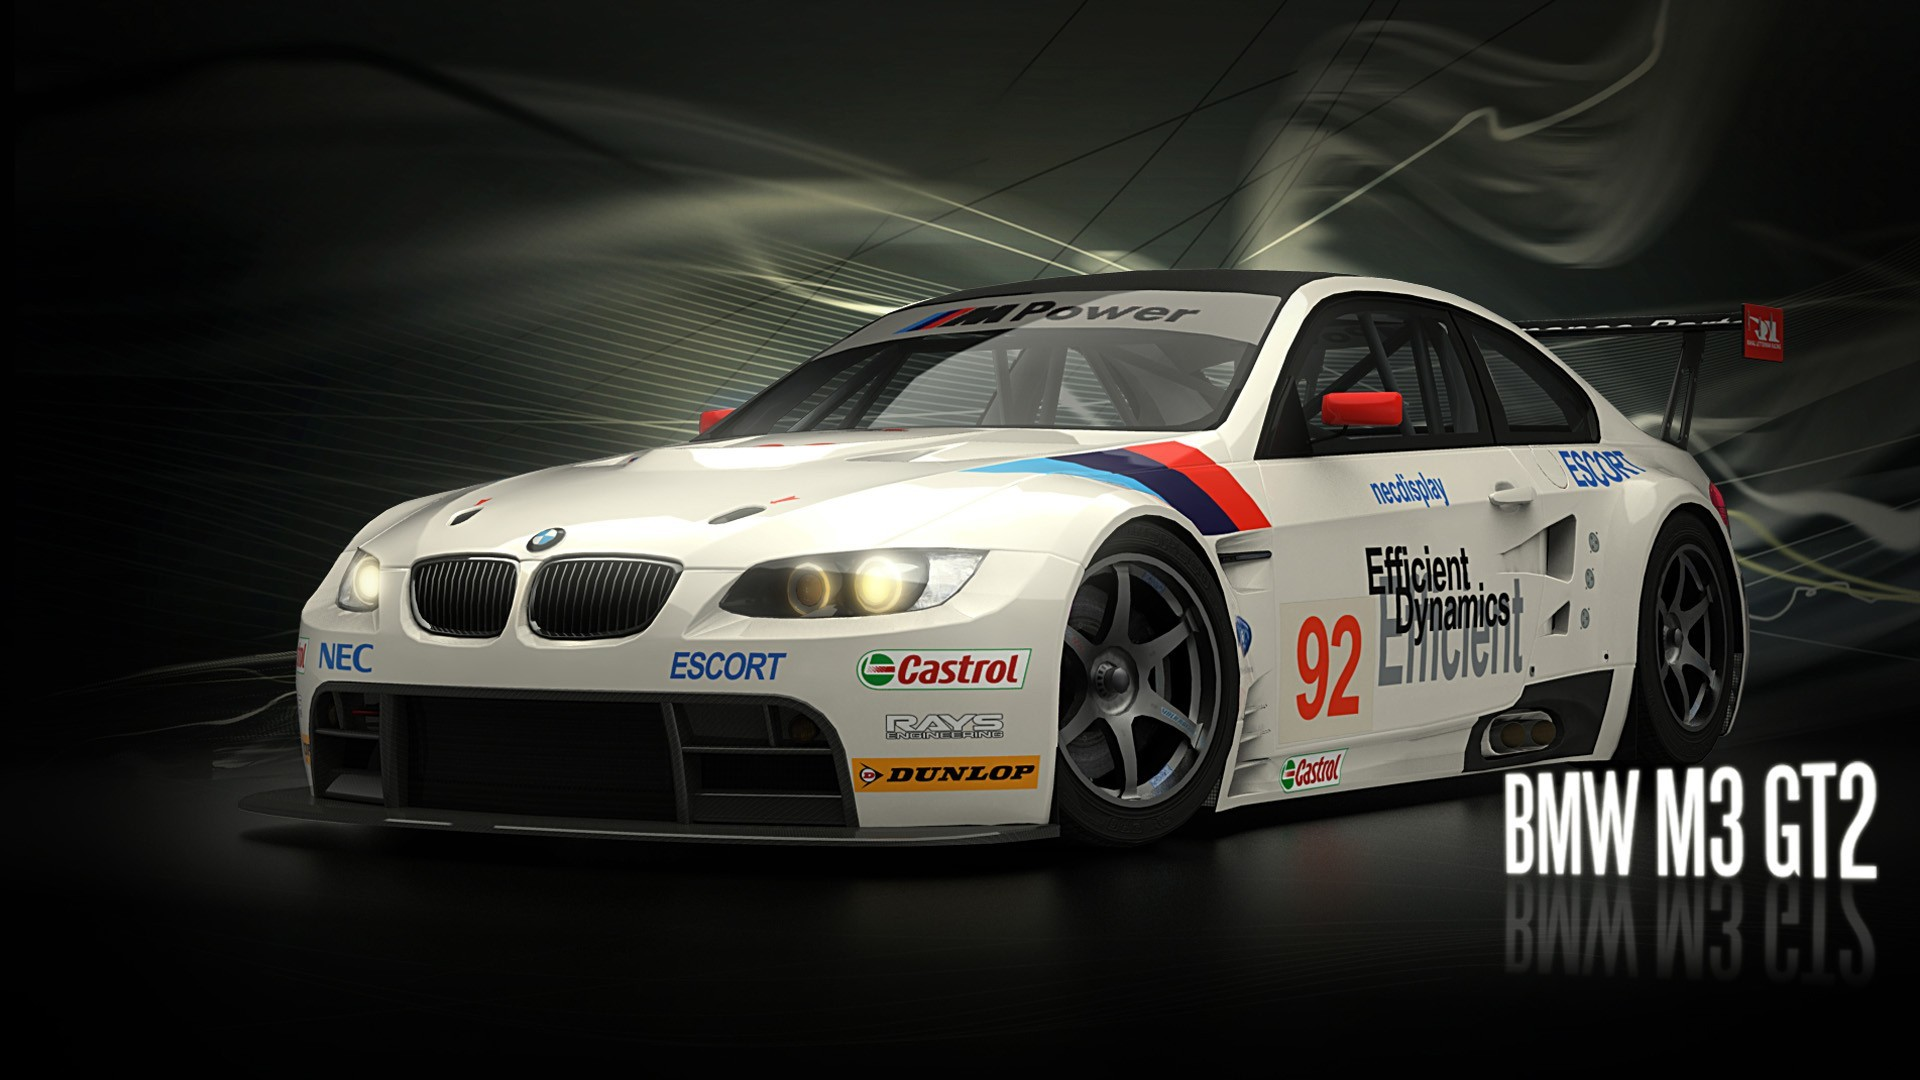 cars Sports bmw m3 HD Wallpaper